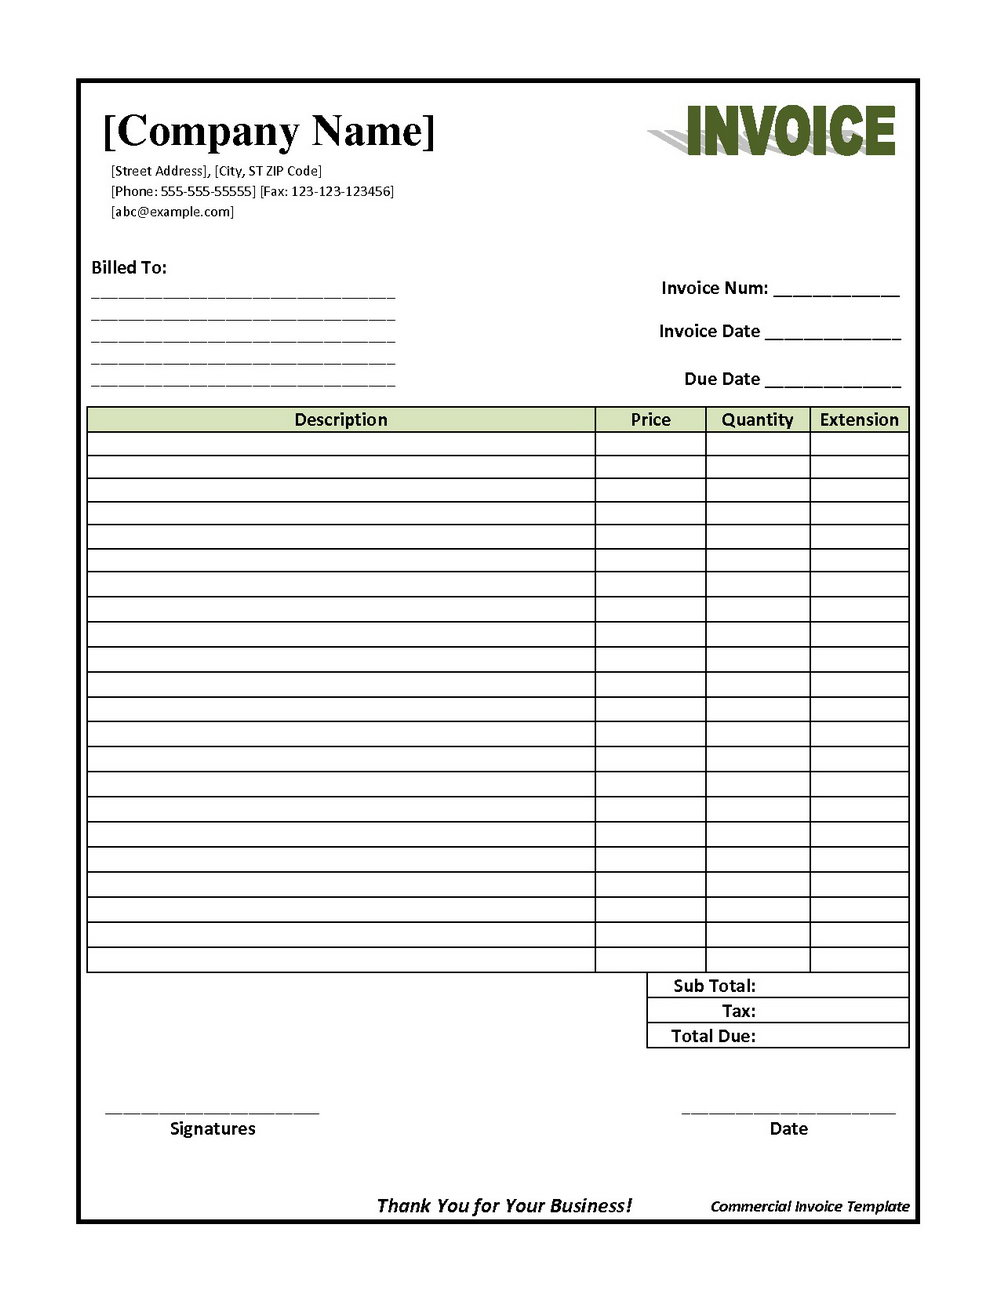 Shipping Company Invoice Template